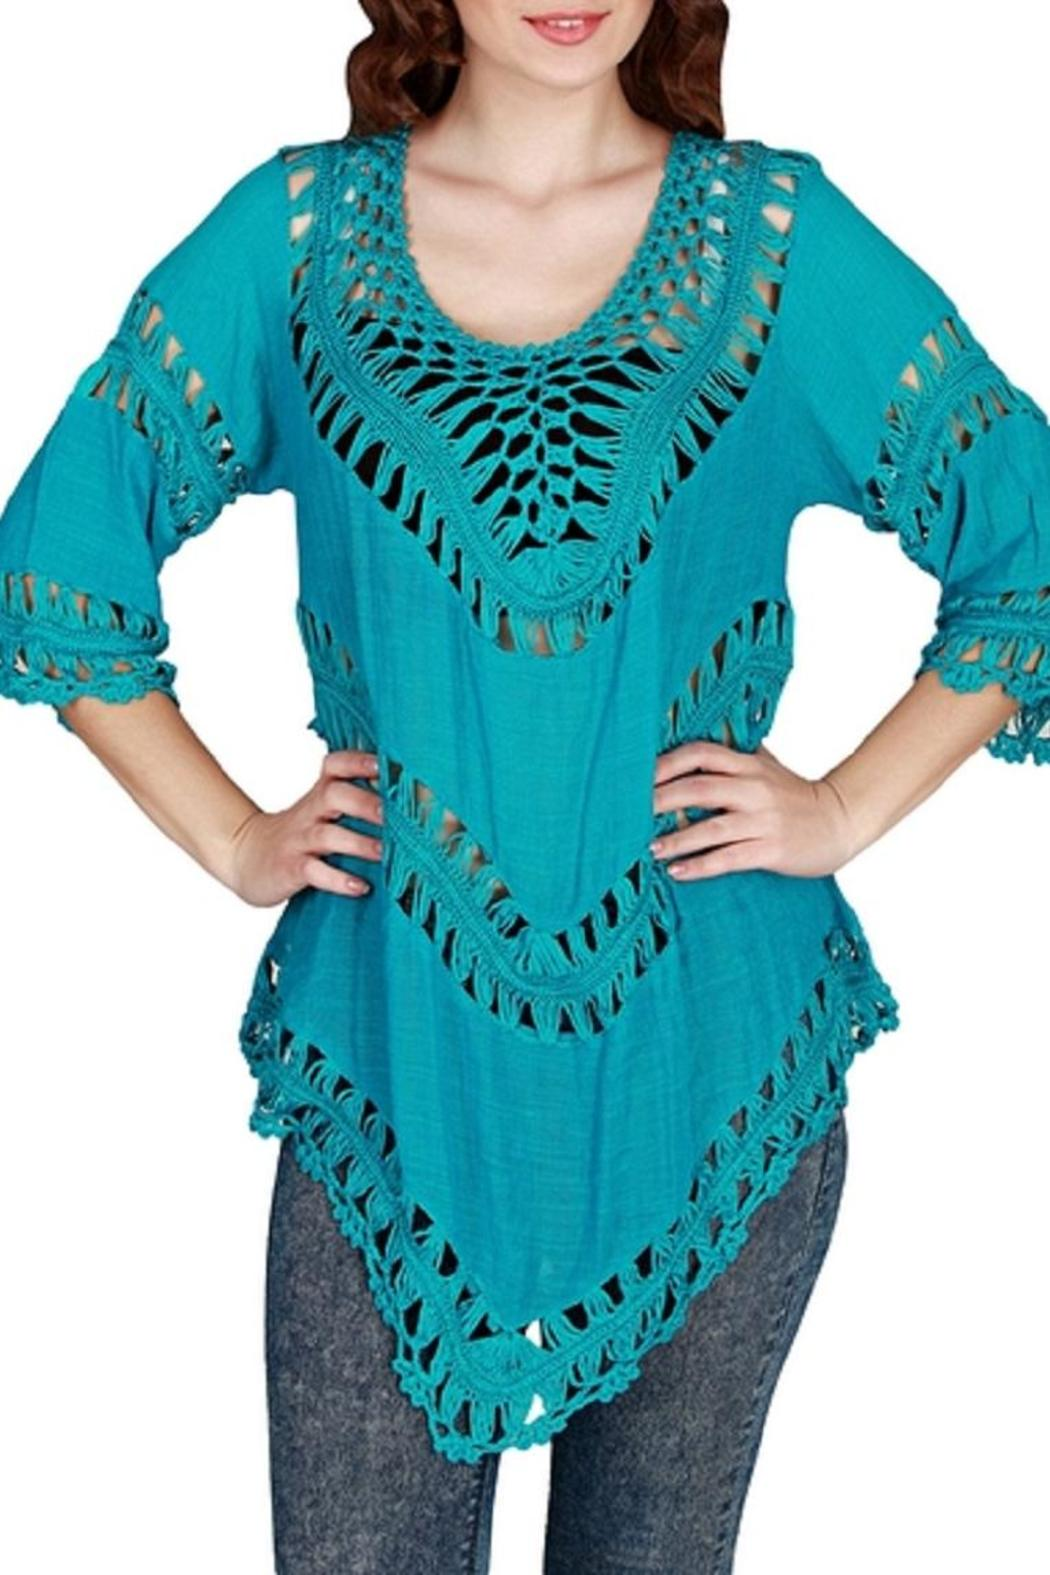 1f582b9236cfb India Boutique Awesome Crochet Top from Florida by Ocean Bri ...